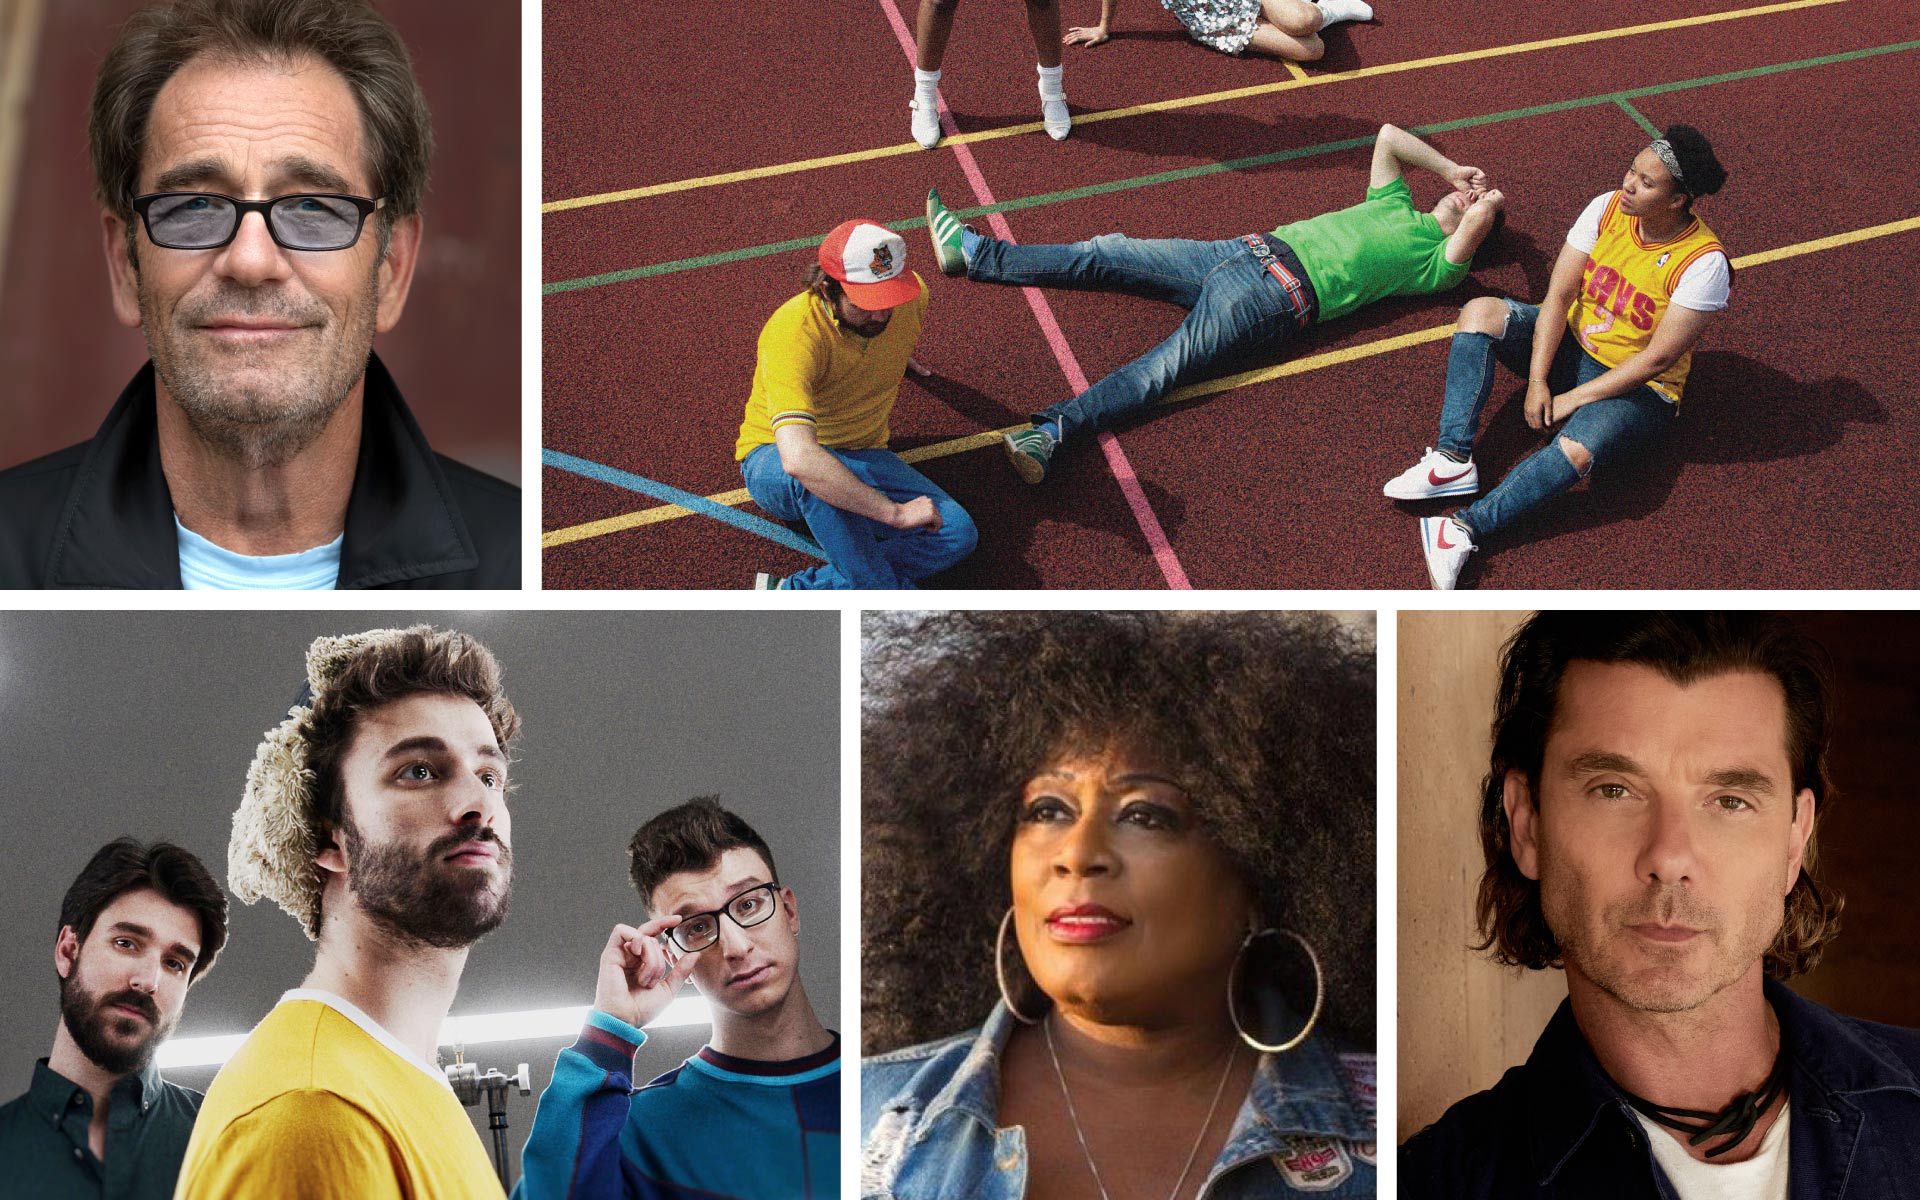 Huey Lewis, The Go! Team, AJR, Lady A, and Gavin Rossdale